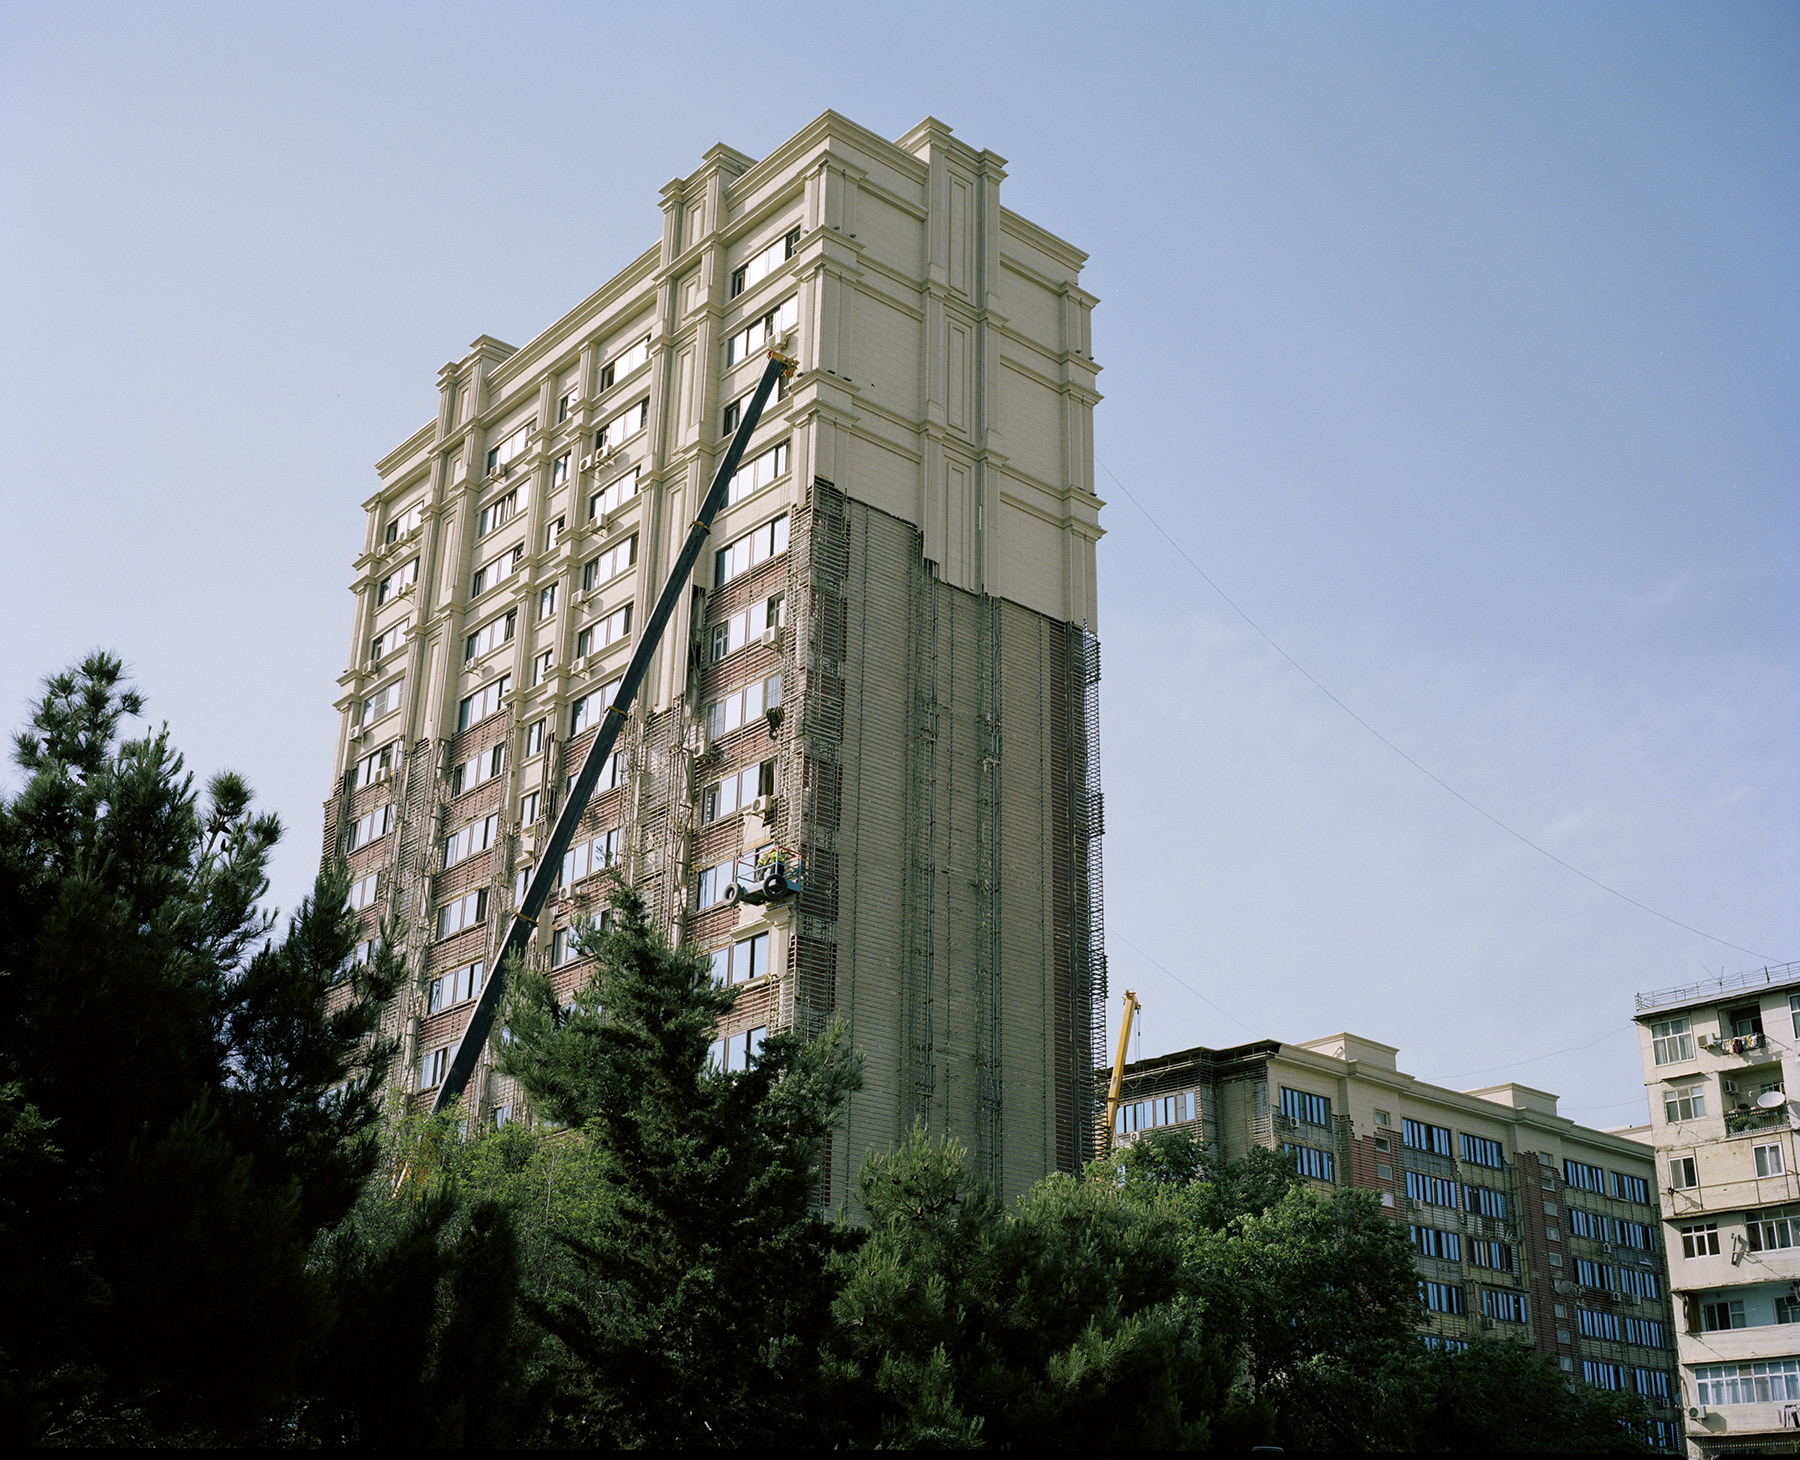 2015: A fatal fire tore through a Baku apartment block on 19th May 2015, just weeks before the European Games. Spreading quickly due to the use of highly flammable cladding, sparking public outrage. The authorities claimed only just over eight hundred buildings were covered in such cladding.  In the weeks following the tragedy, all over Baku city workers were busy removing the cladding and painting everything sandstone so as to keep a uniform look to the other buildings in the city.